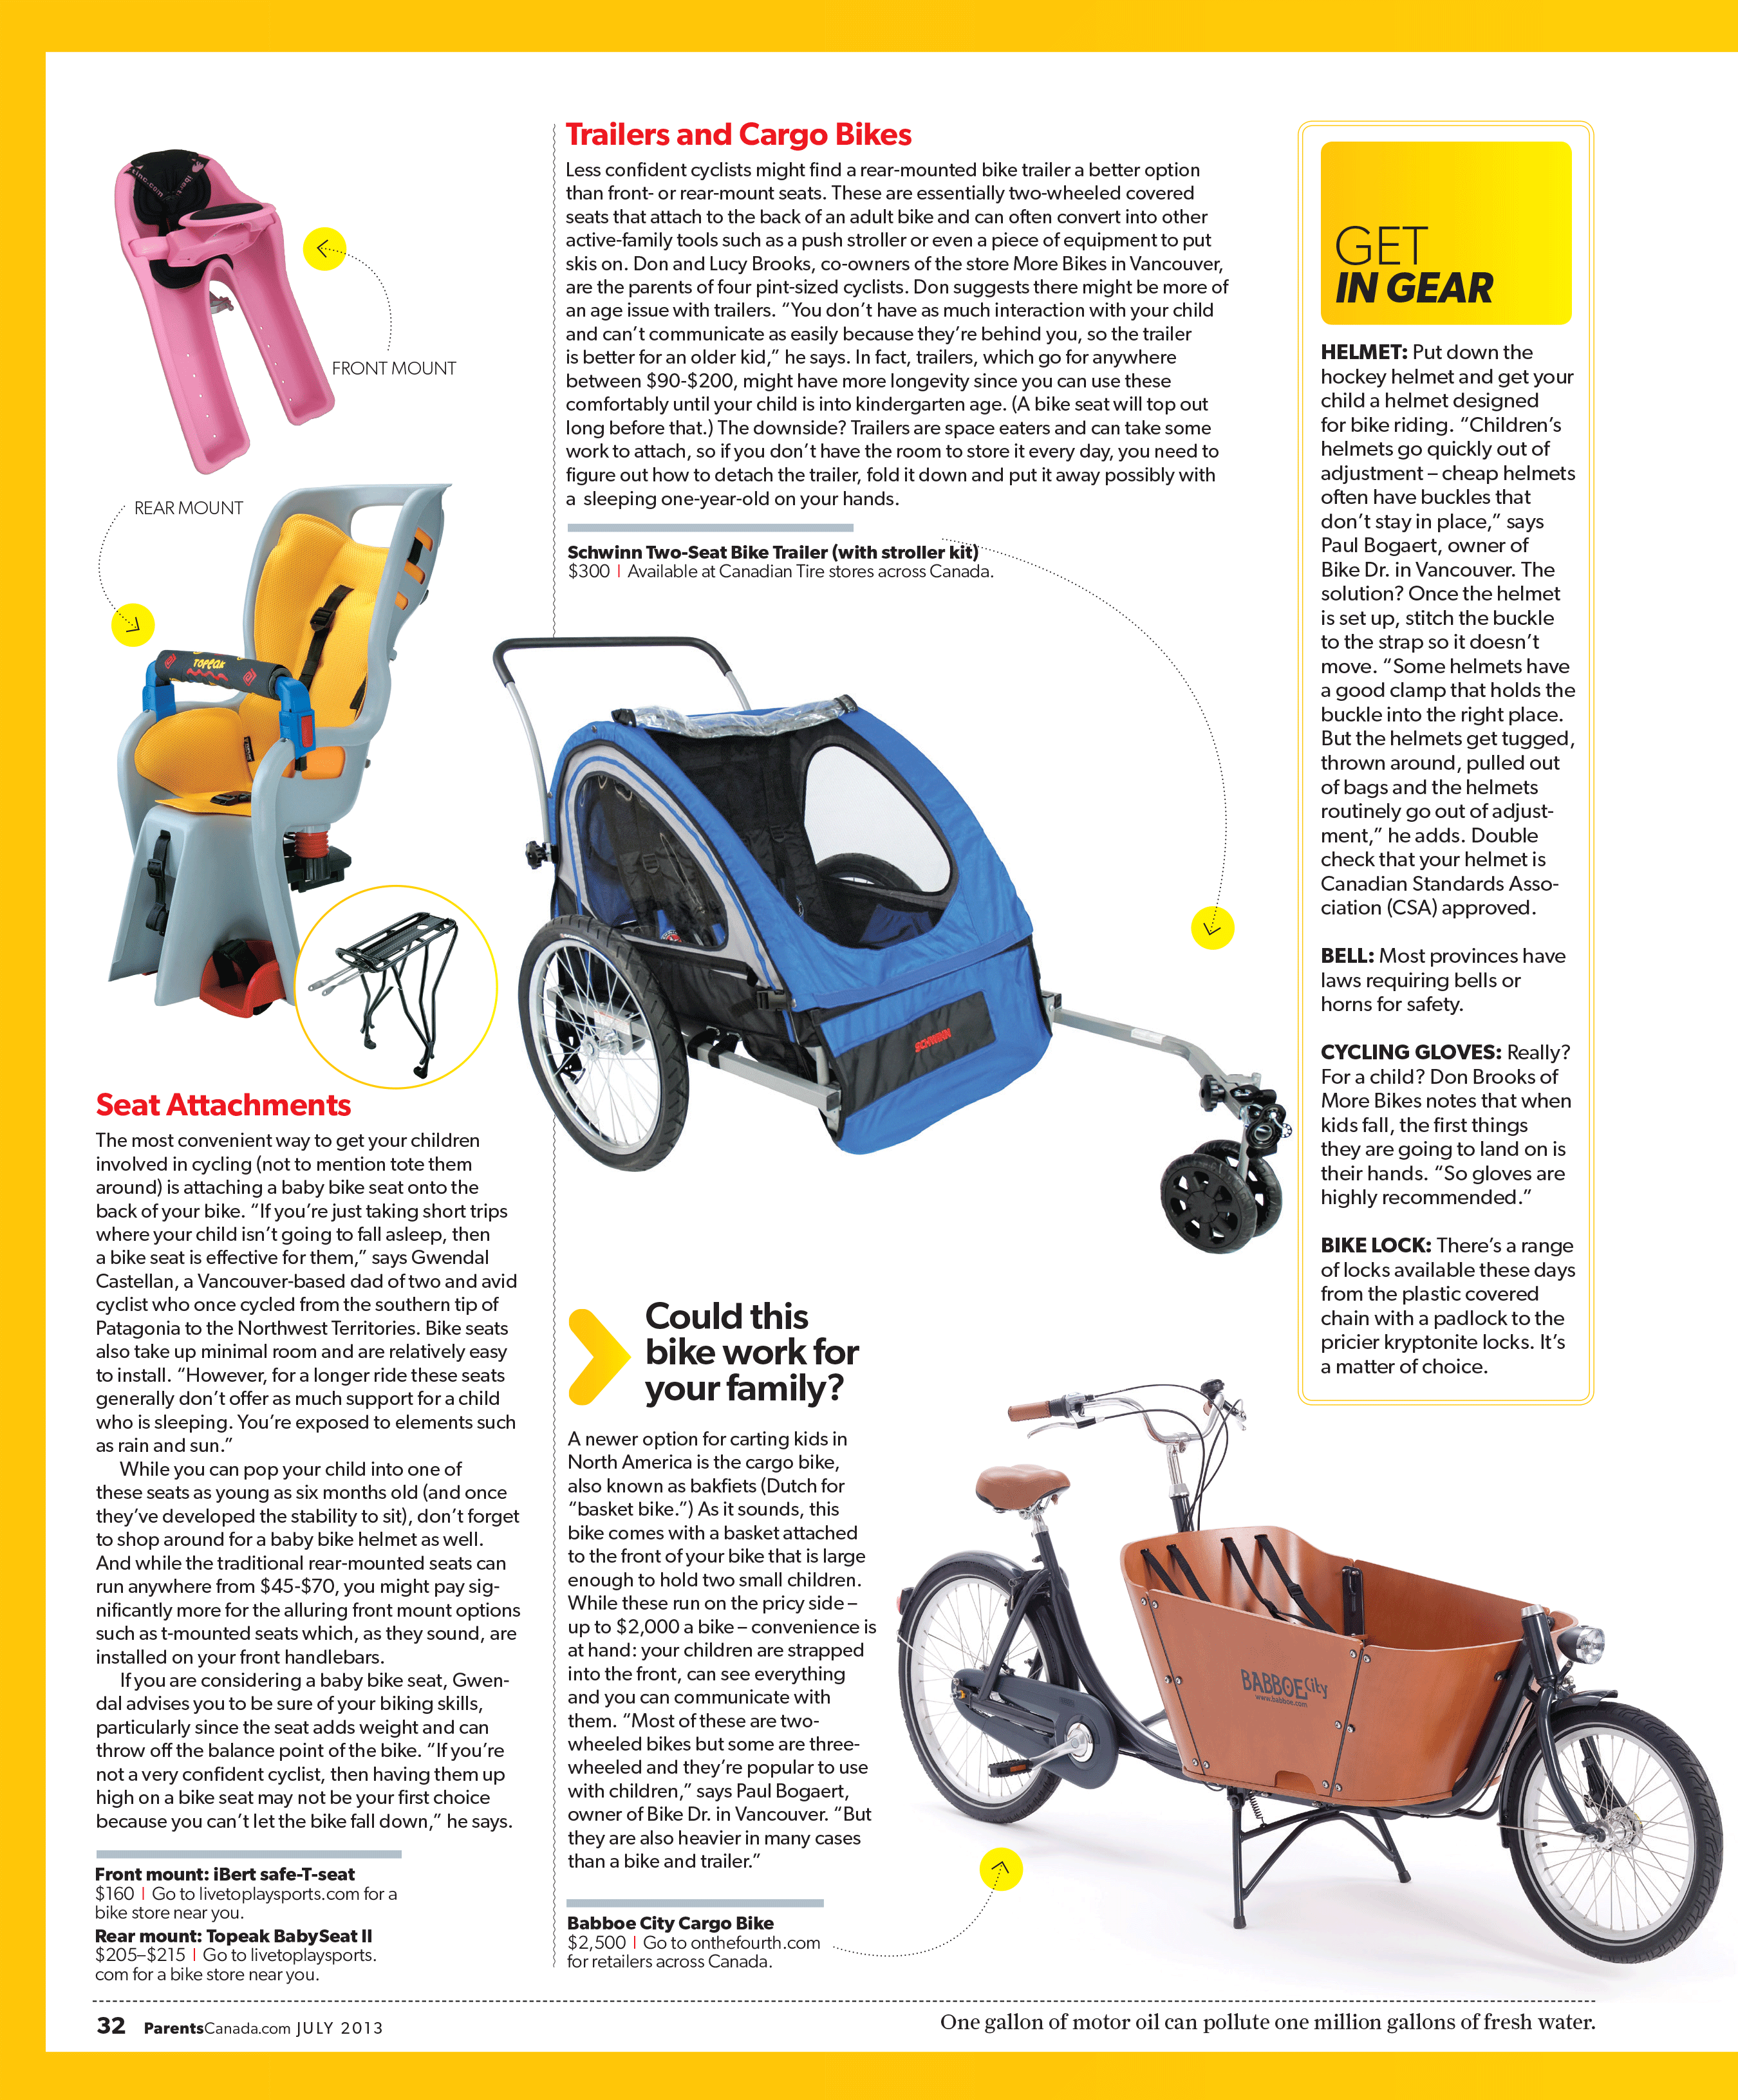 How to start cycling with your child: advice from Parents